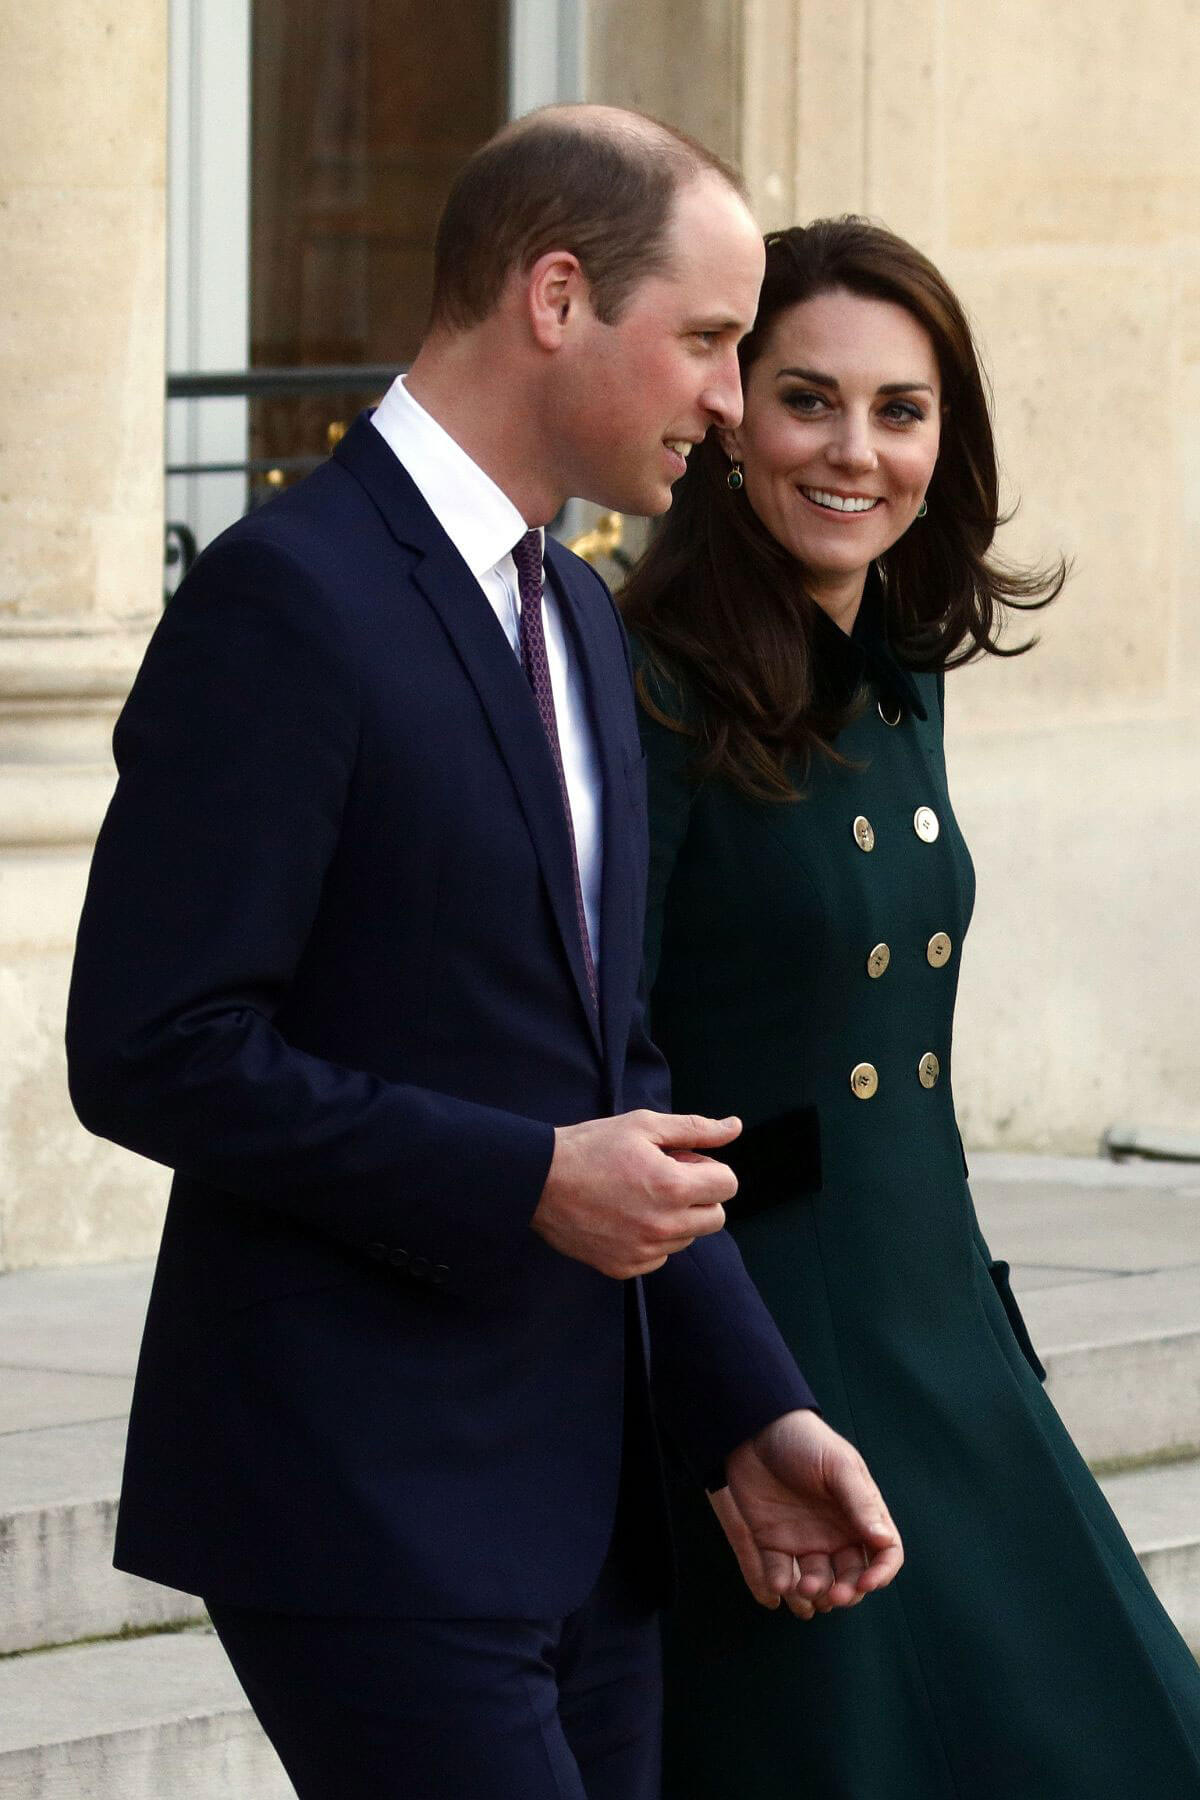 Kate Middleton and Prince William Stills at Elysee Palace in Paris